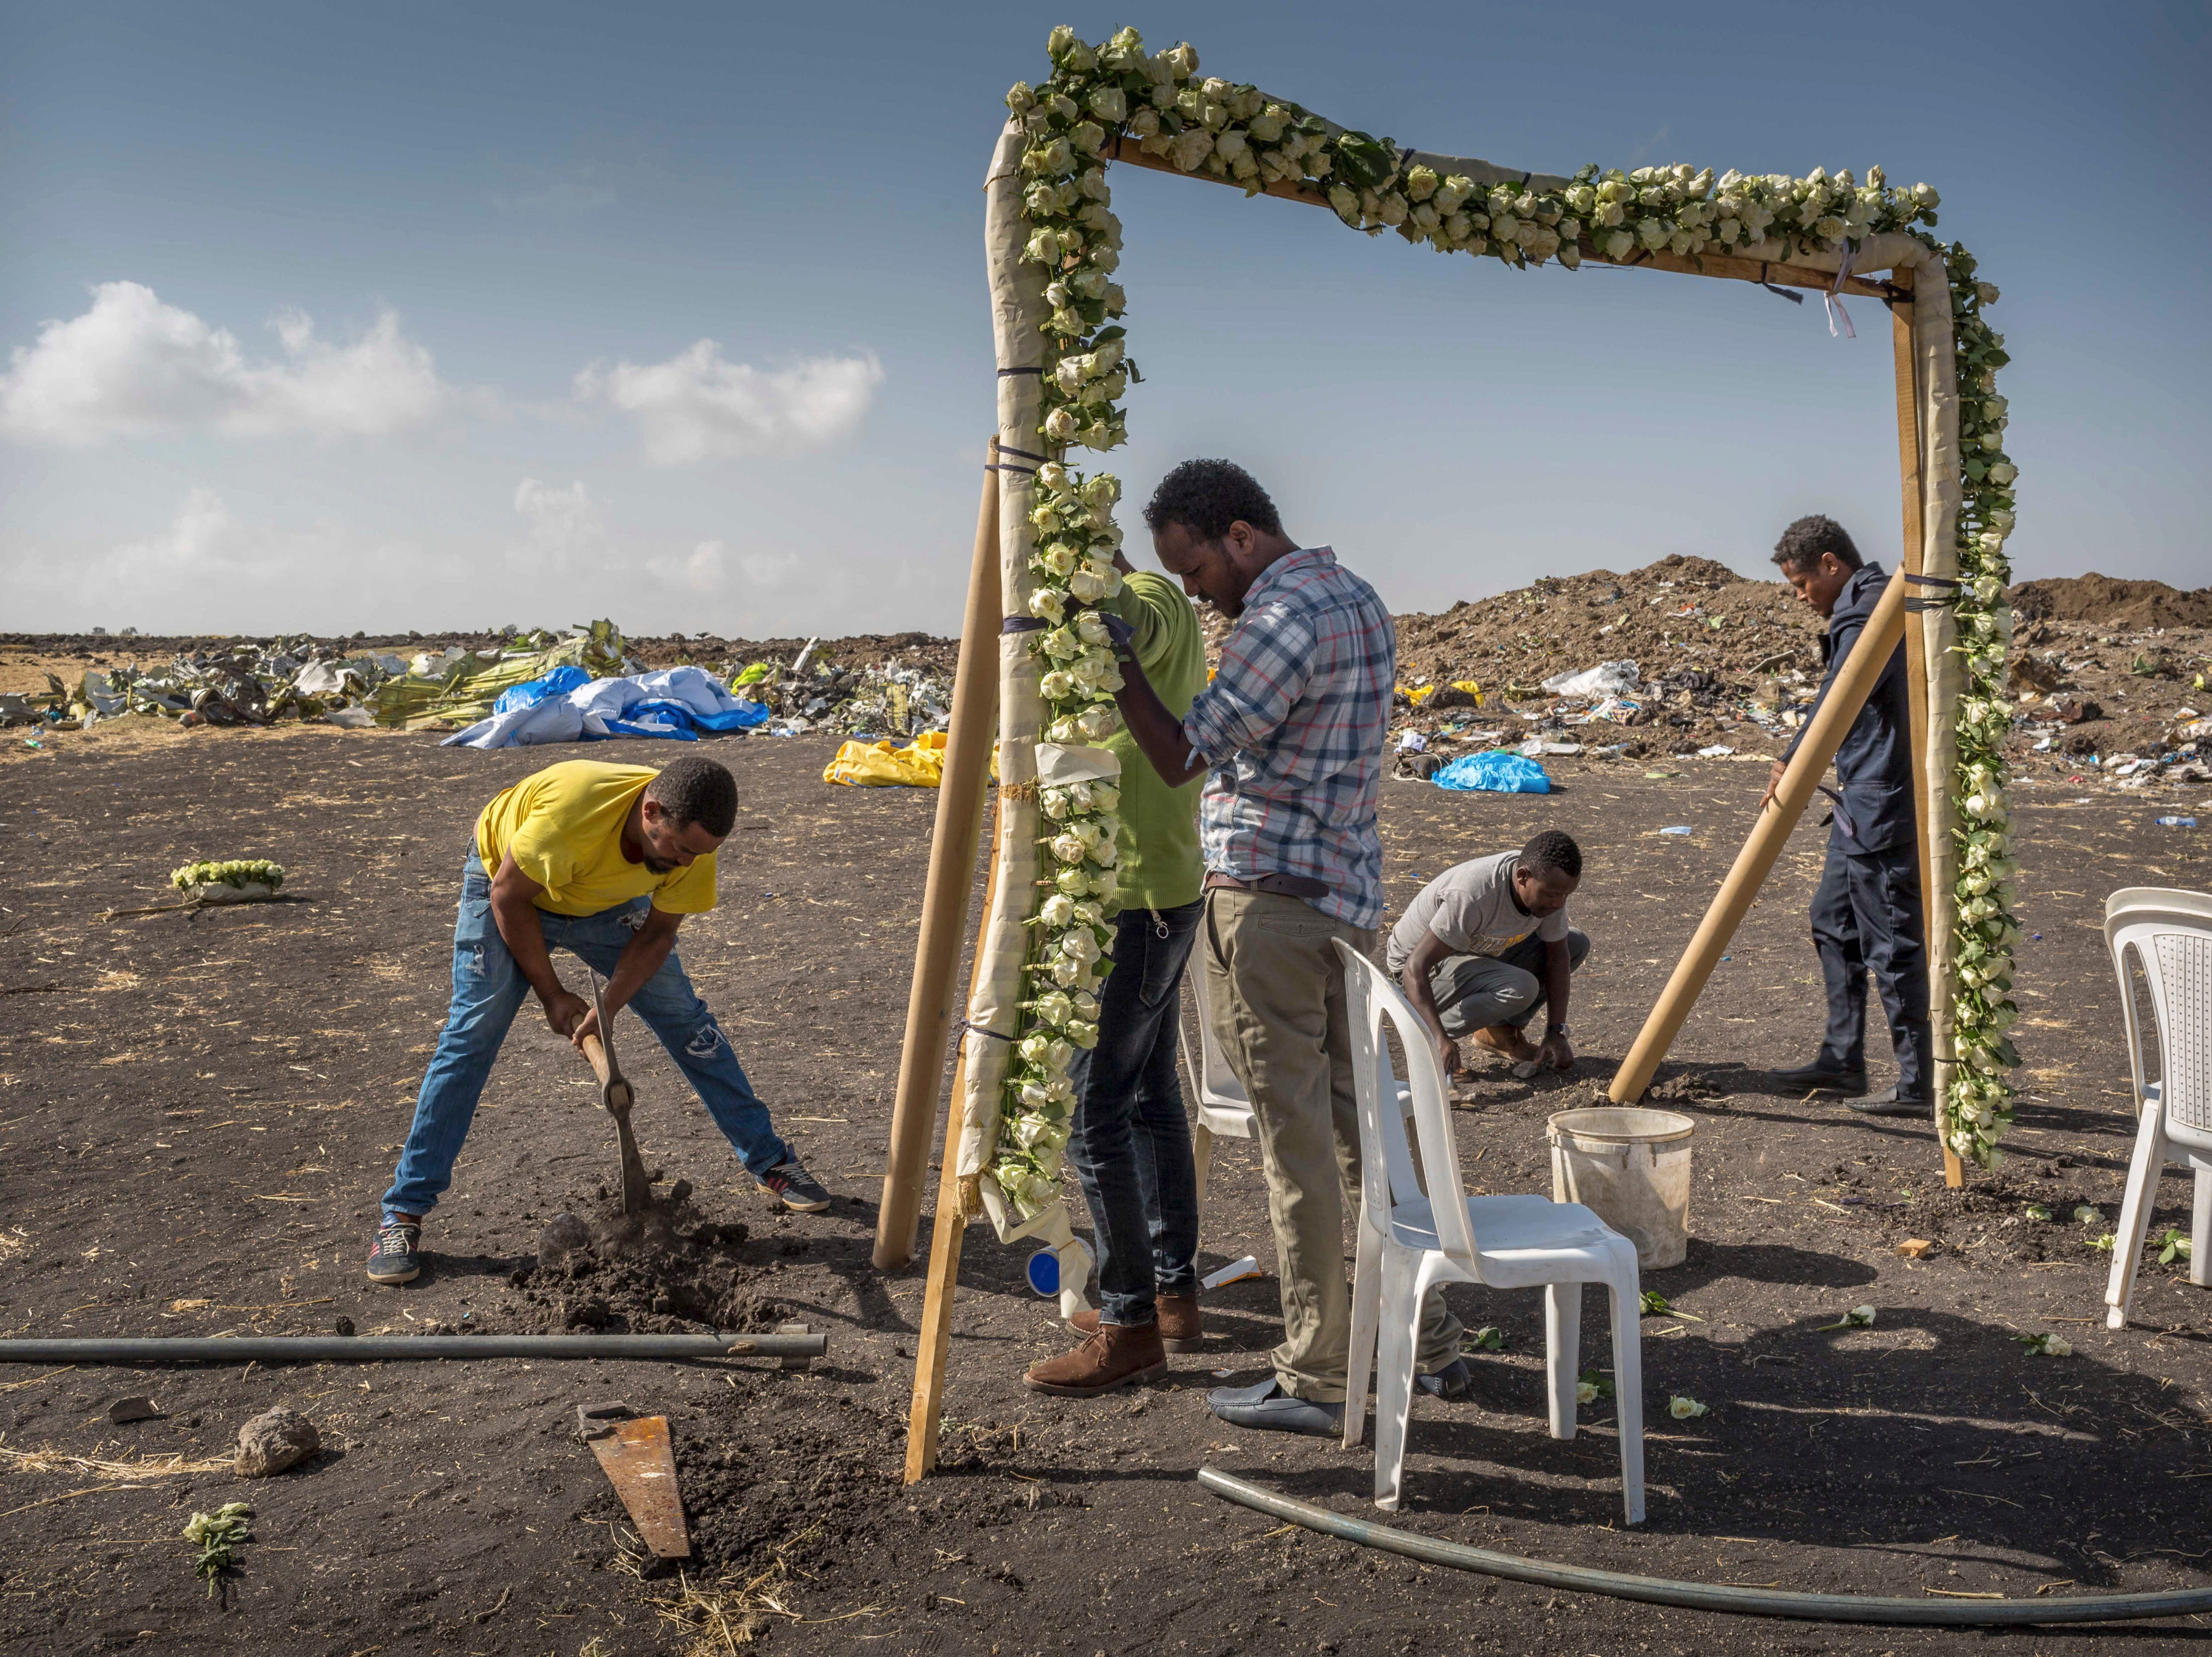 Workers erect a floral installation at the scene where the Ethiopian Airlines Boeing 737 Max 8 crashed.